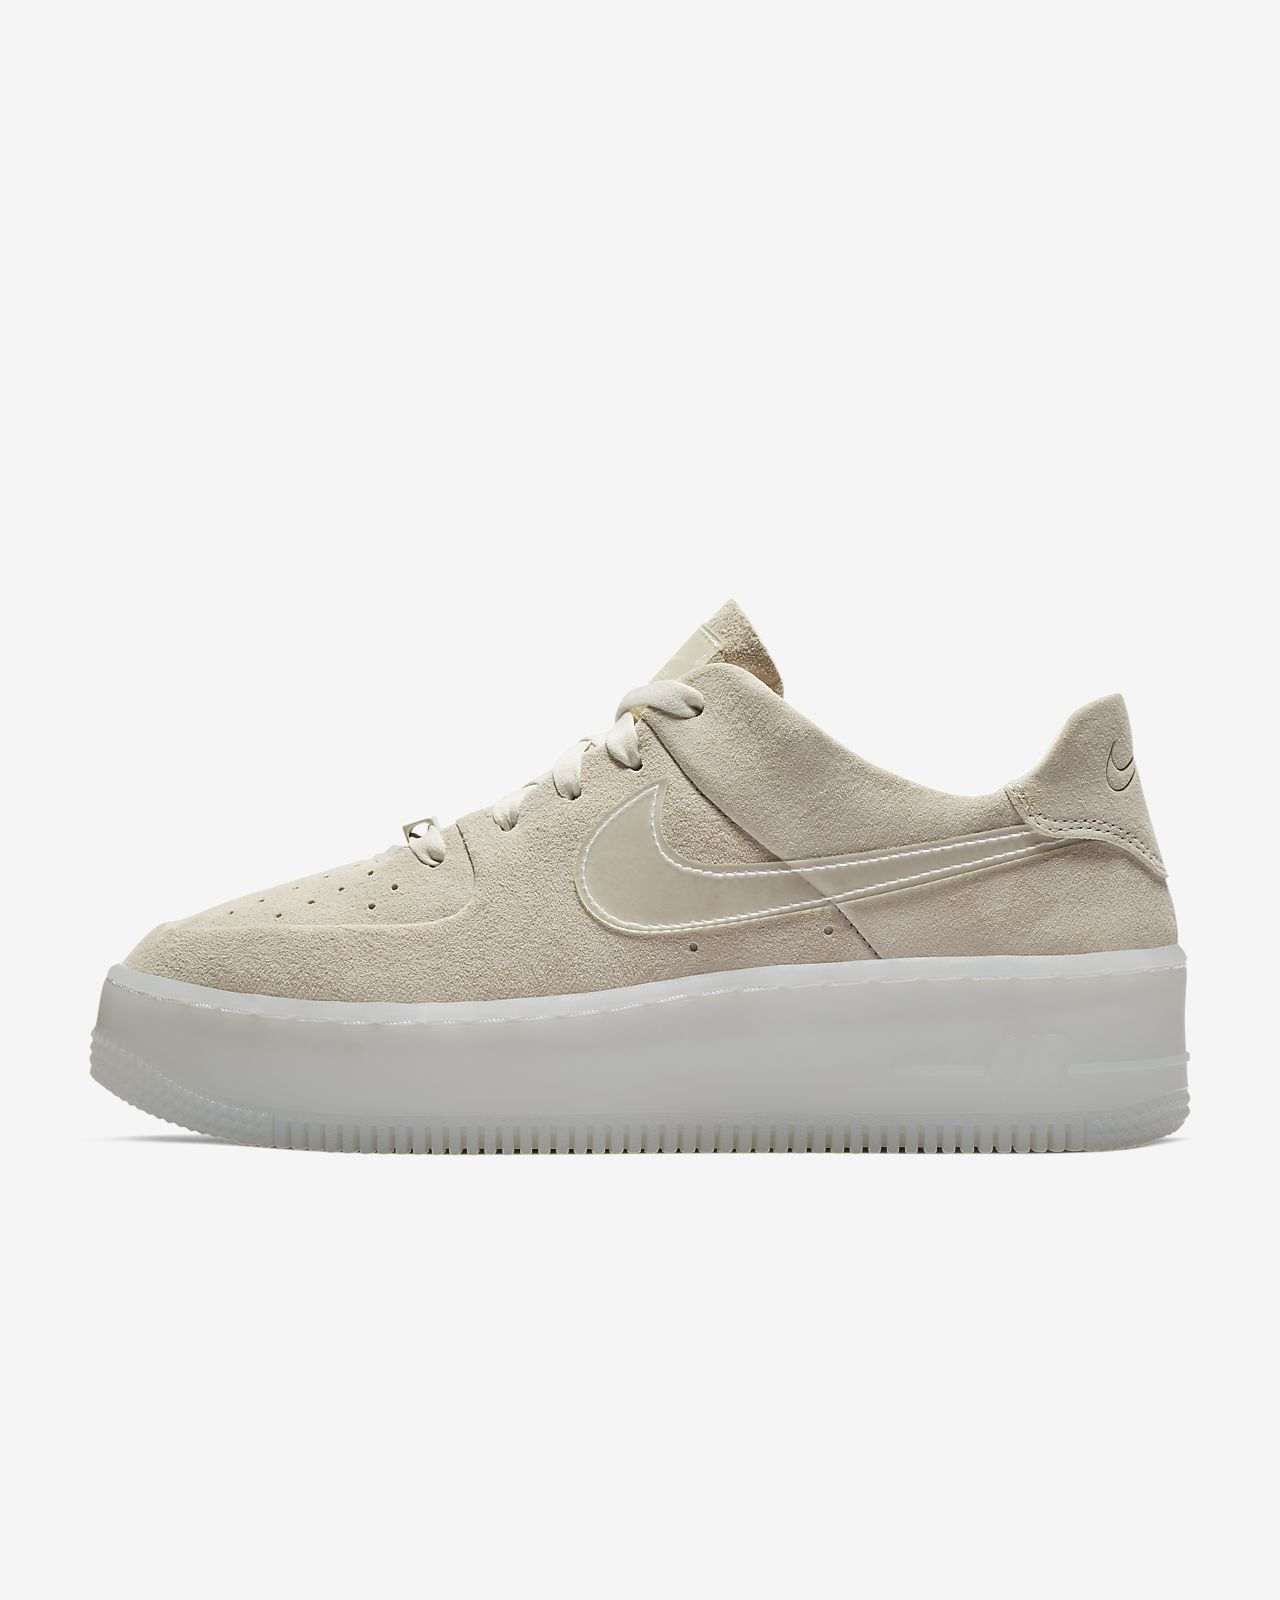 22e1eee9517 Chaussure Nike Air Force 1 Sage Low LX pour Femme. Nike.com BE